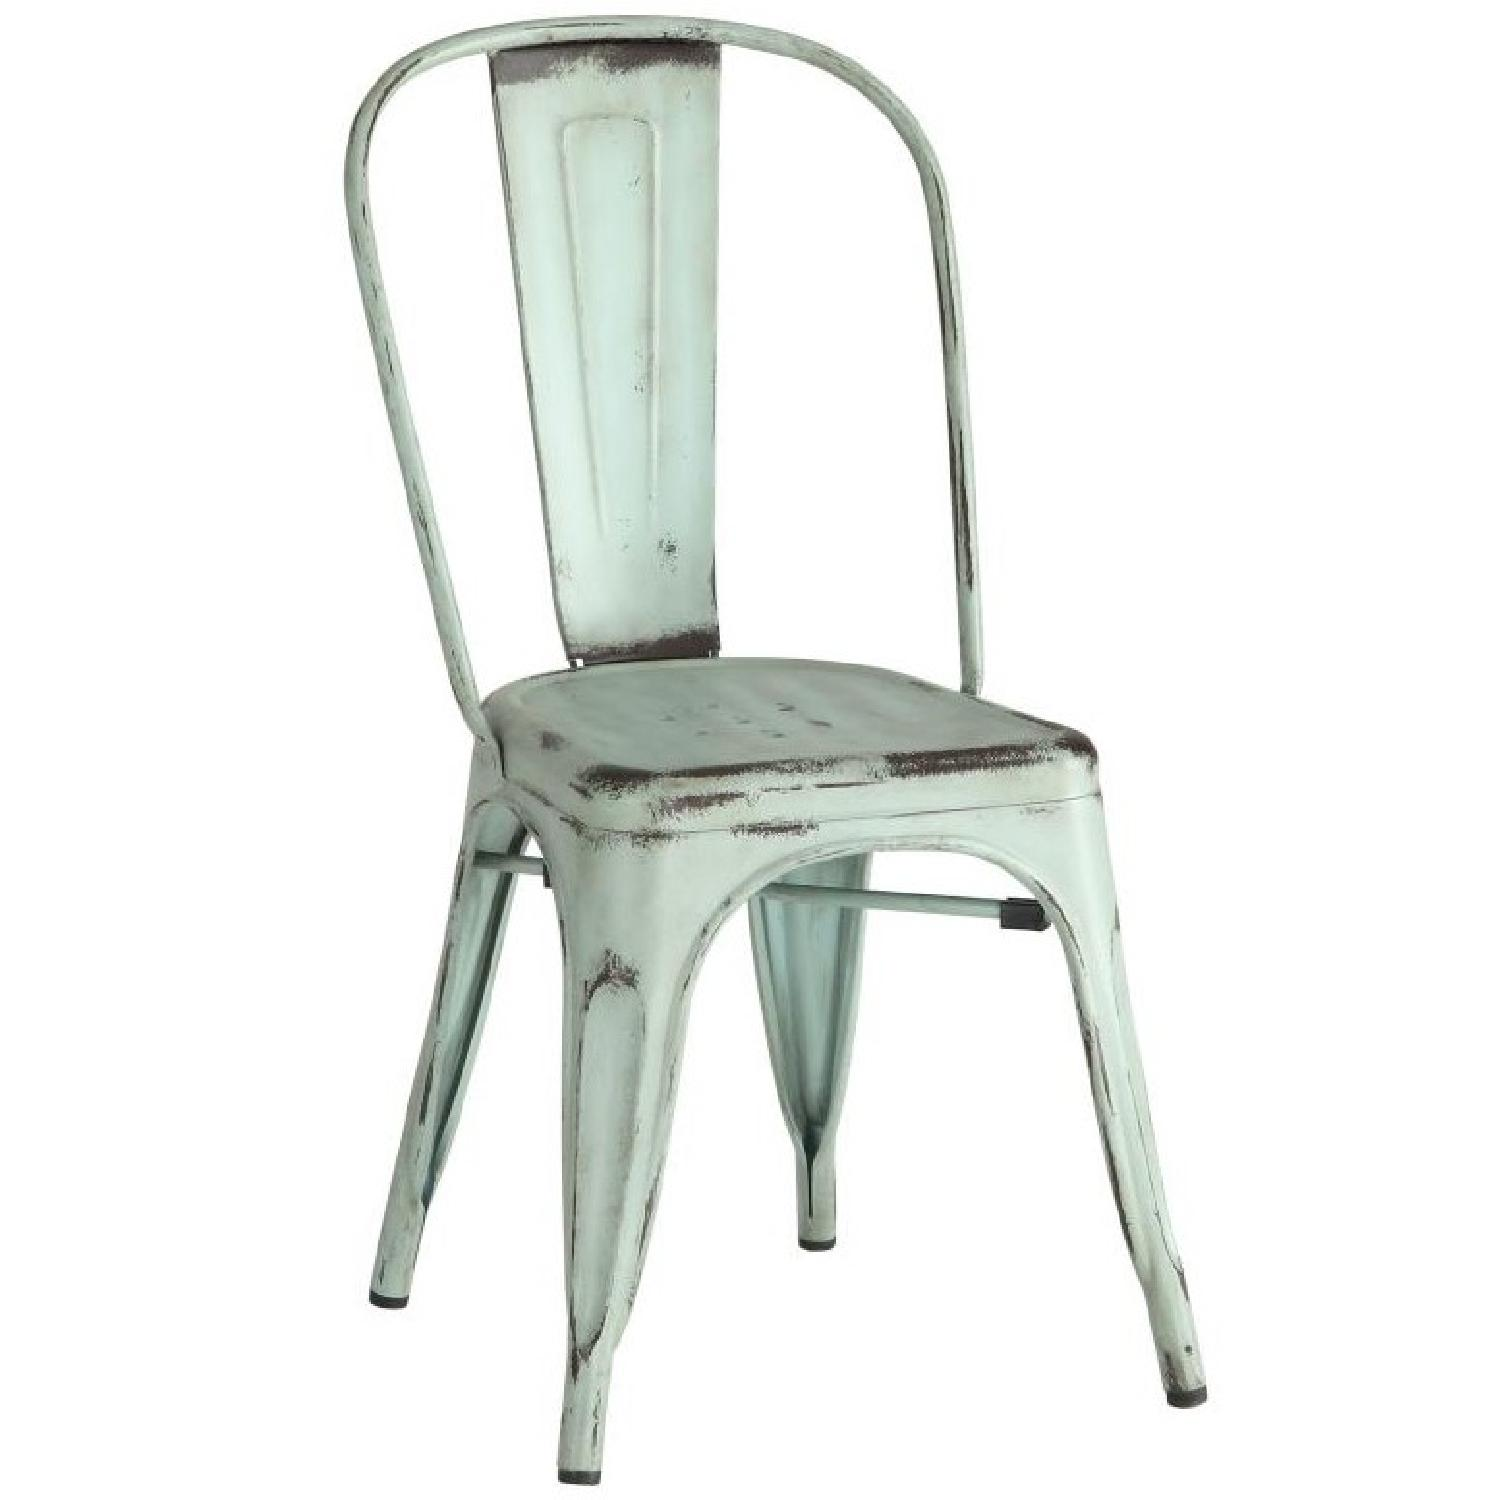 Rustic Galvanized Metal Dining Chairs In Antique Green Aptdeco